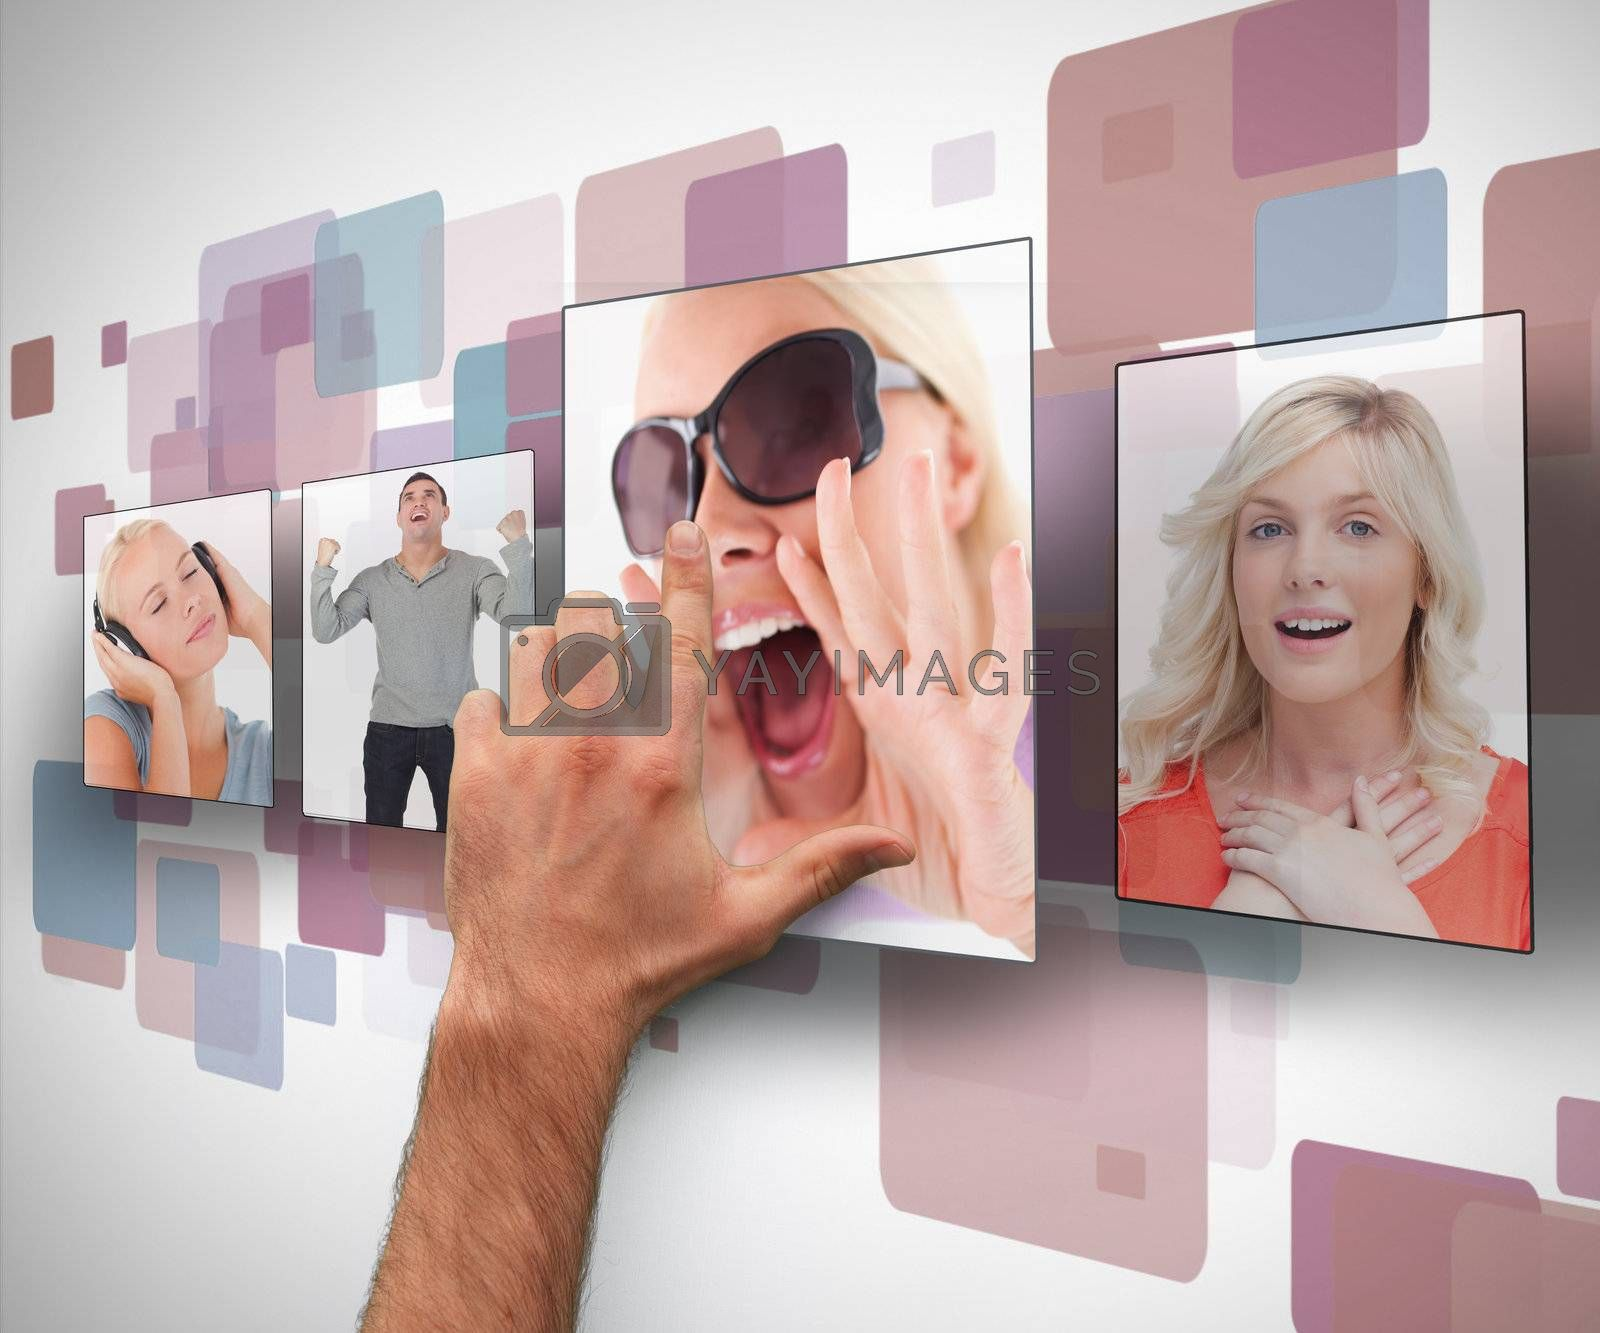 Male hand selecting photo from digital blue purple and white wall